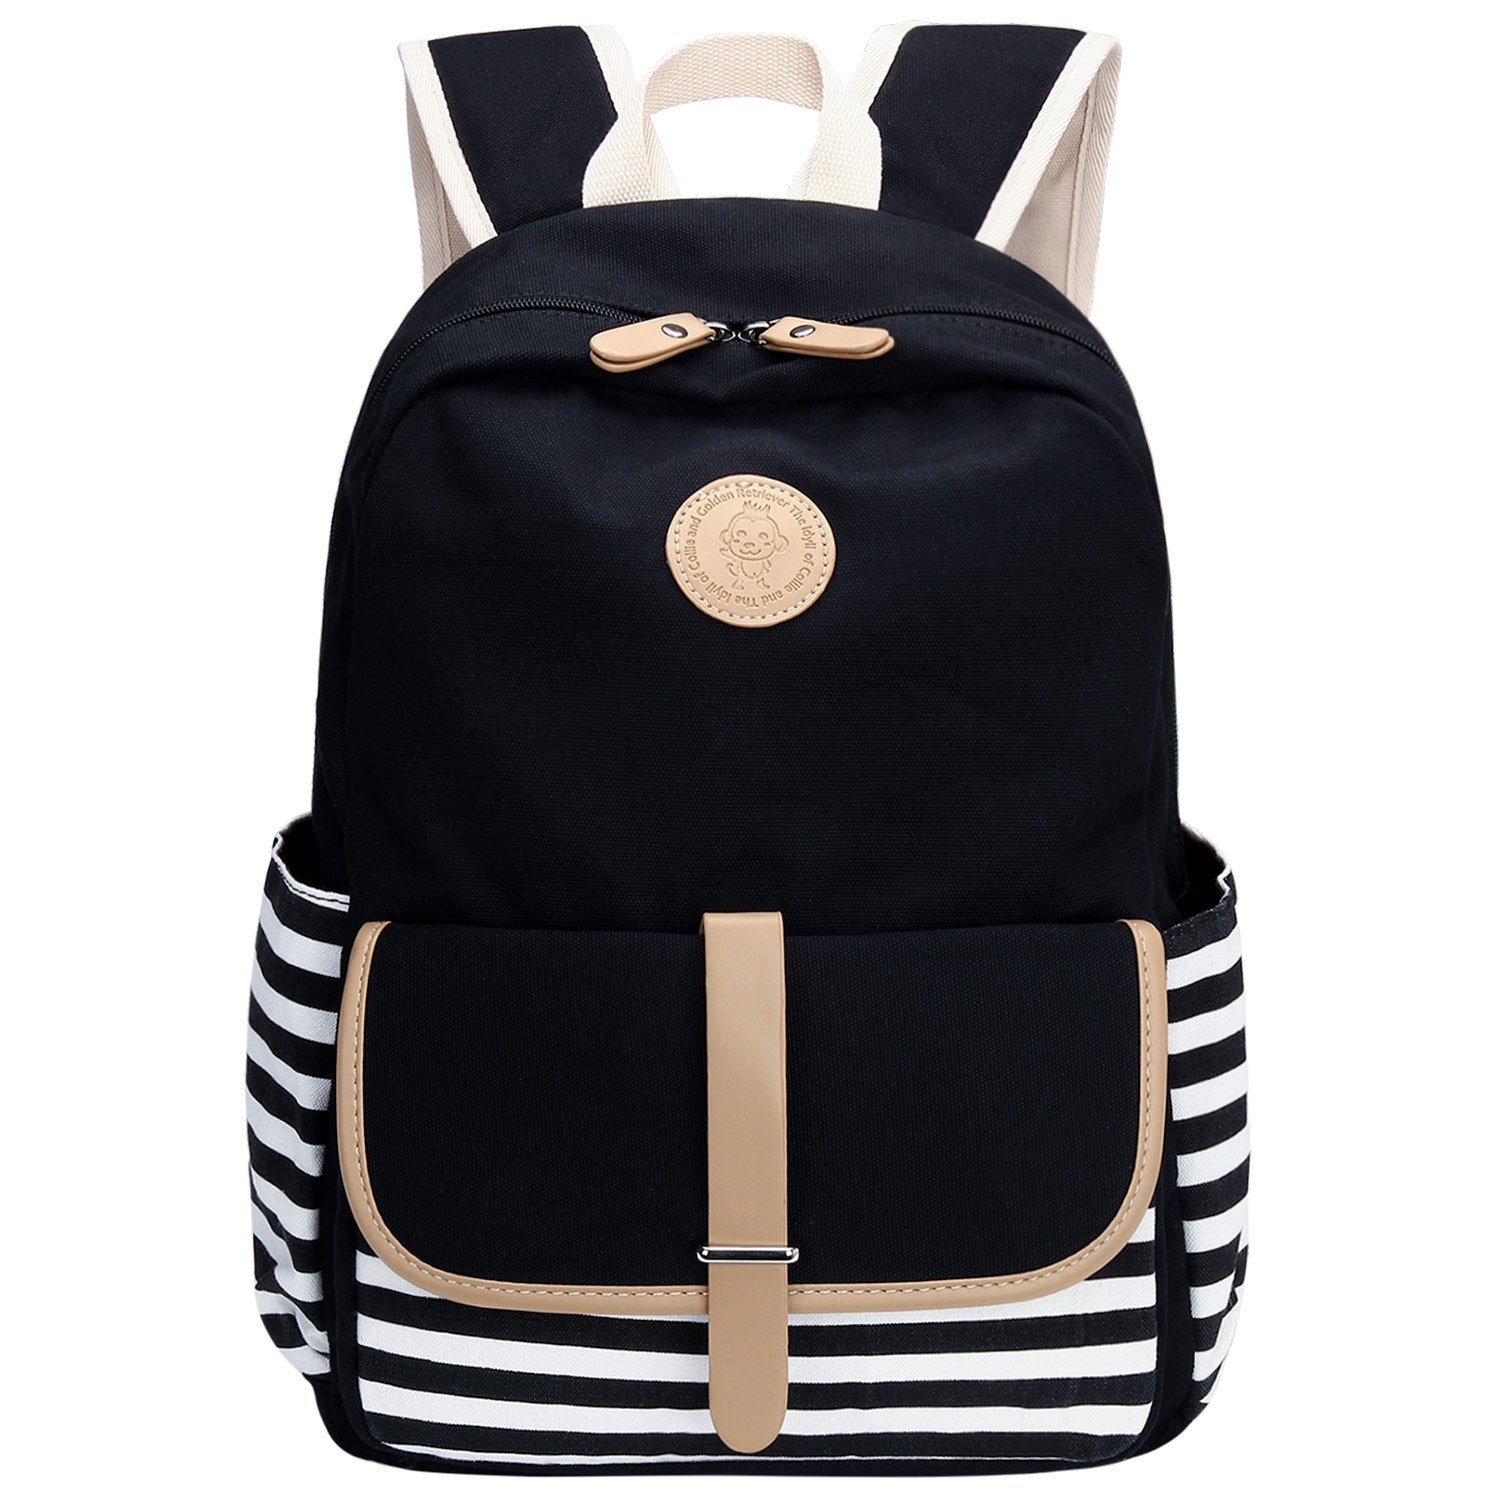 Amazon Best Sellers: Best Kids' Backpacks